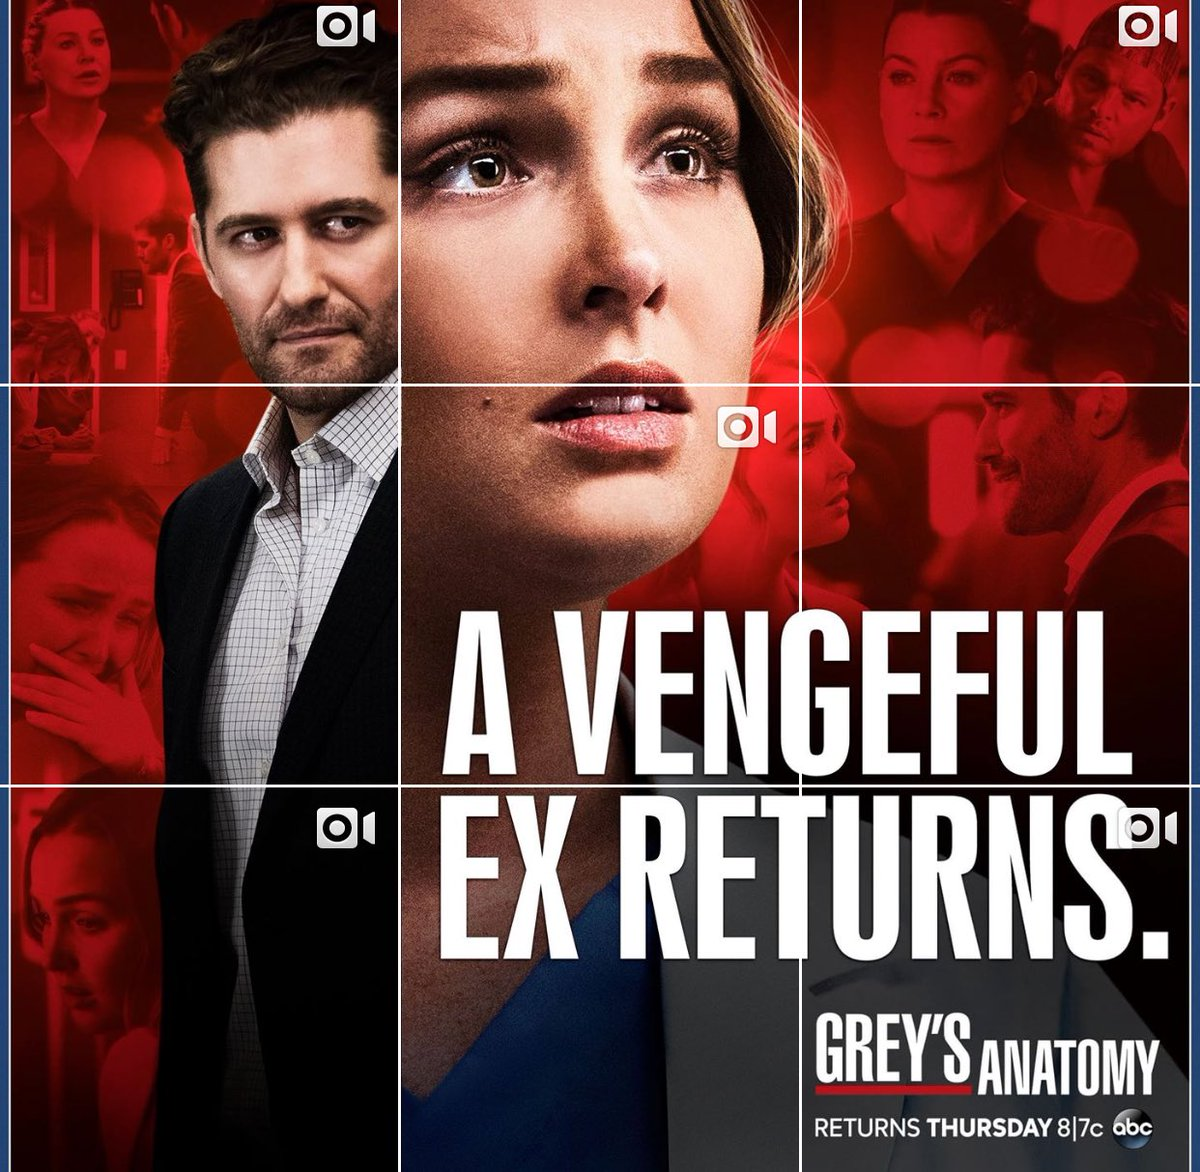 Greys Anatomy's photo on #TGIT